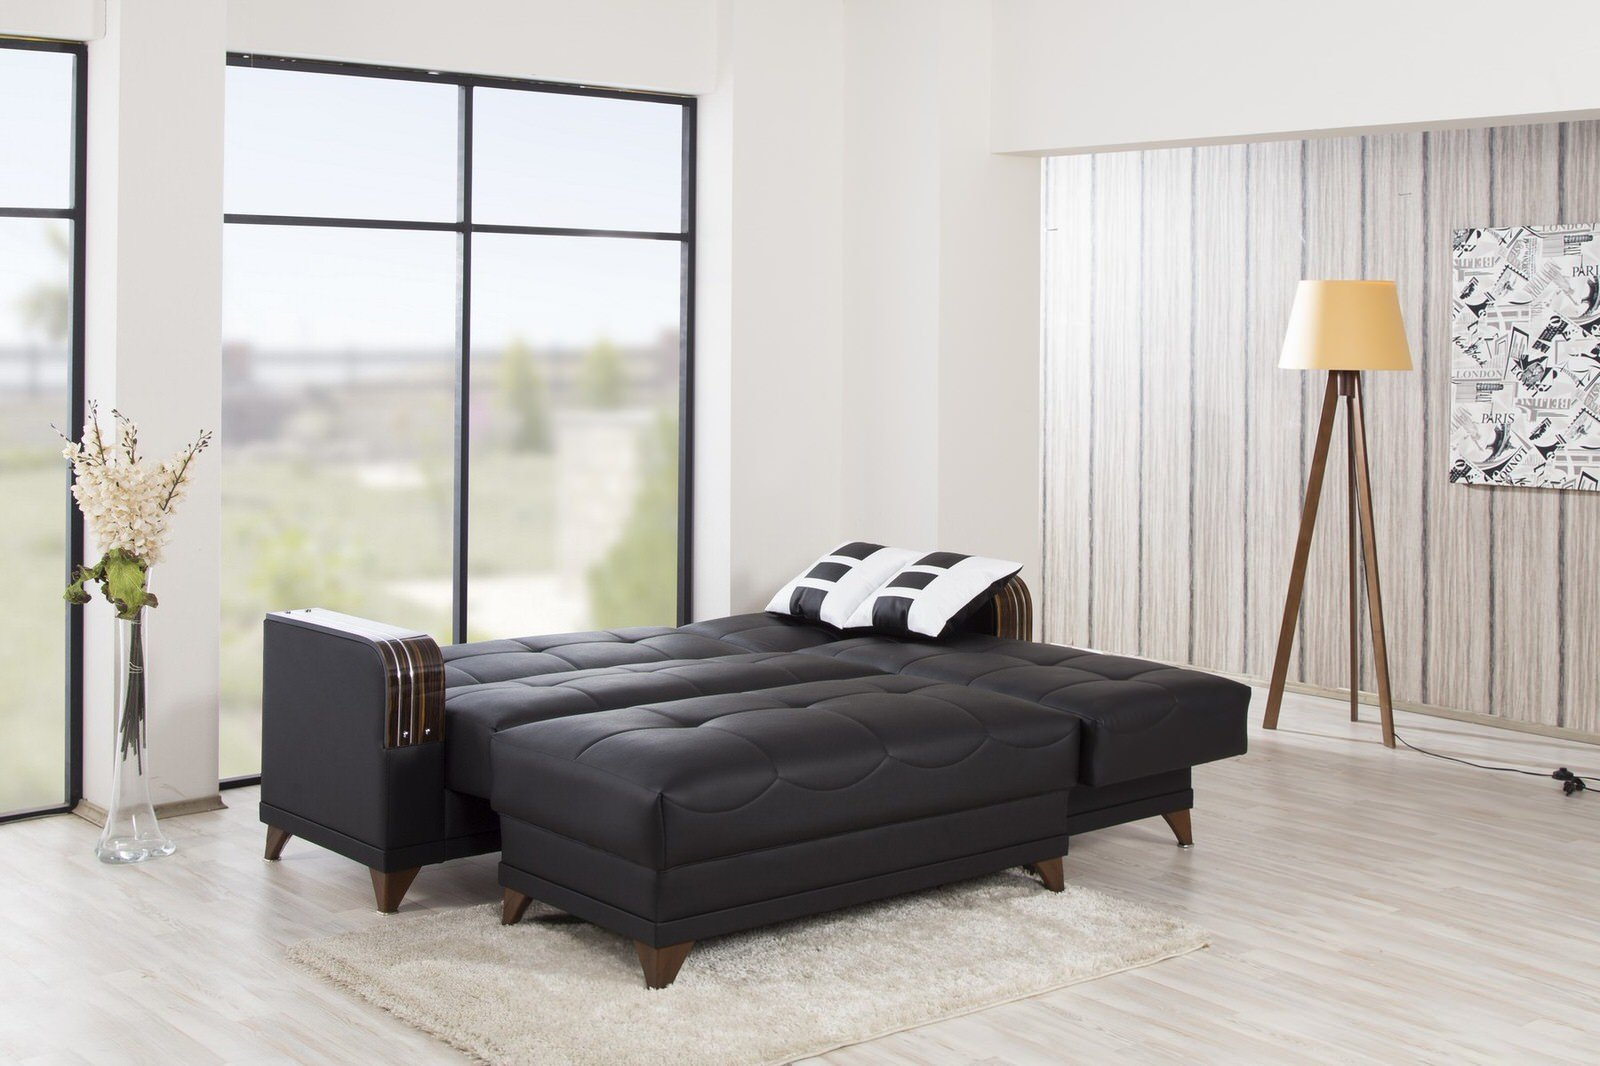 Almira Zen Black Sectional Sofa By Casamode